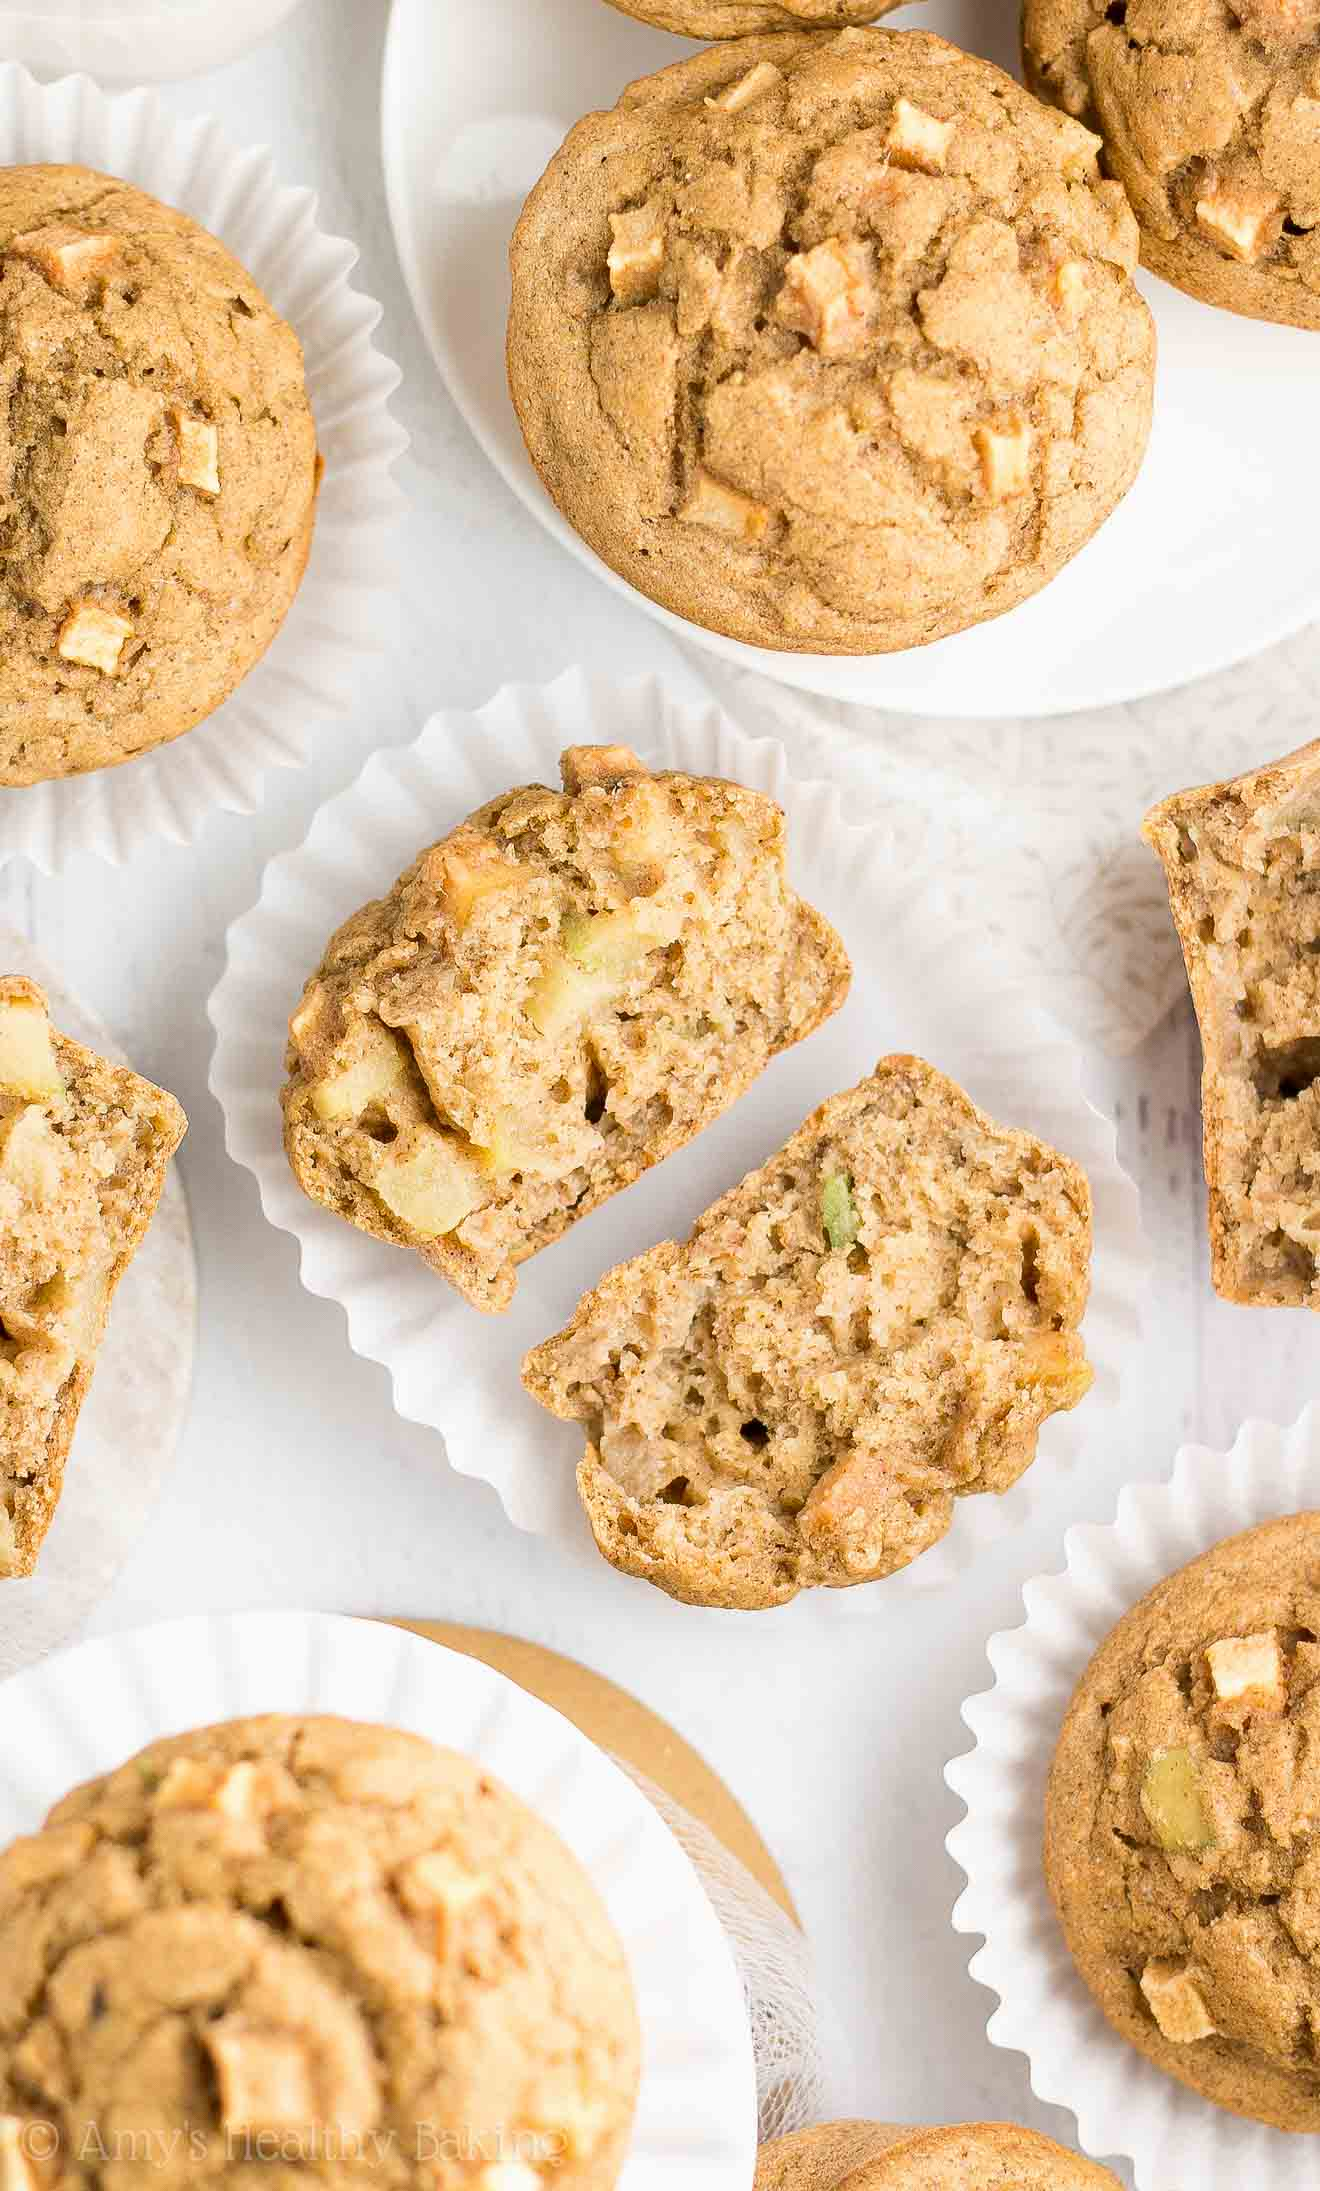 Healthy Cinnamon Apple Banana Muffins with No Refined Sugar